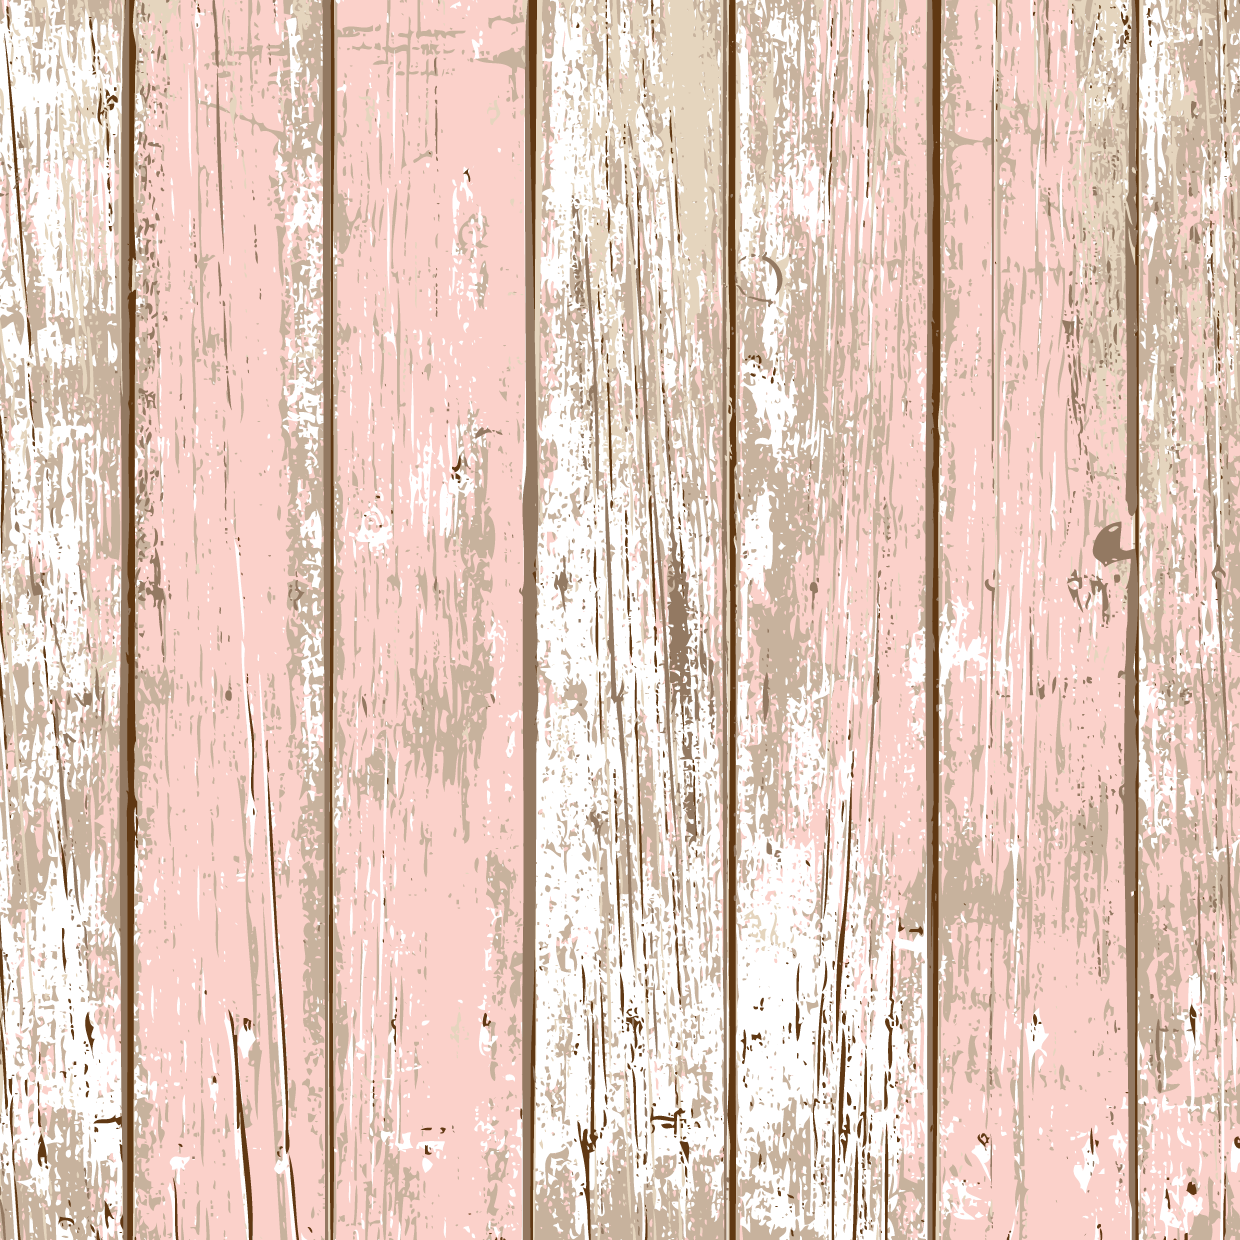 New Printable Vintage Wood Background Http X2f X2f Ift Tt X2f Xm8wfj One Of The Thi Wood Effect Wallpaper Distressed Wood Wallpaper How To Distress Wood